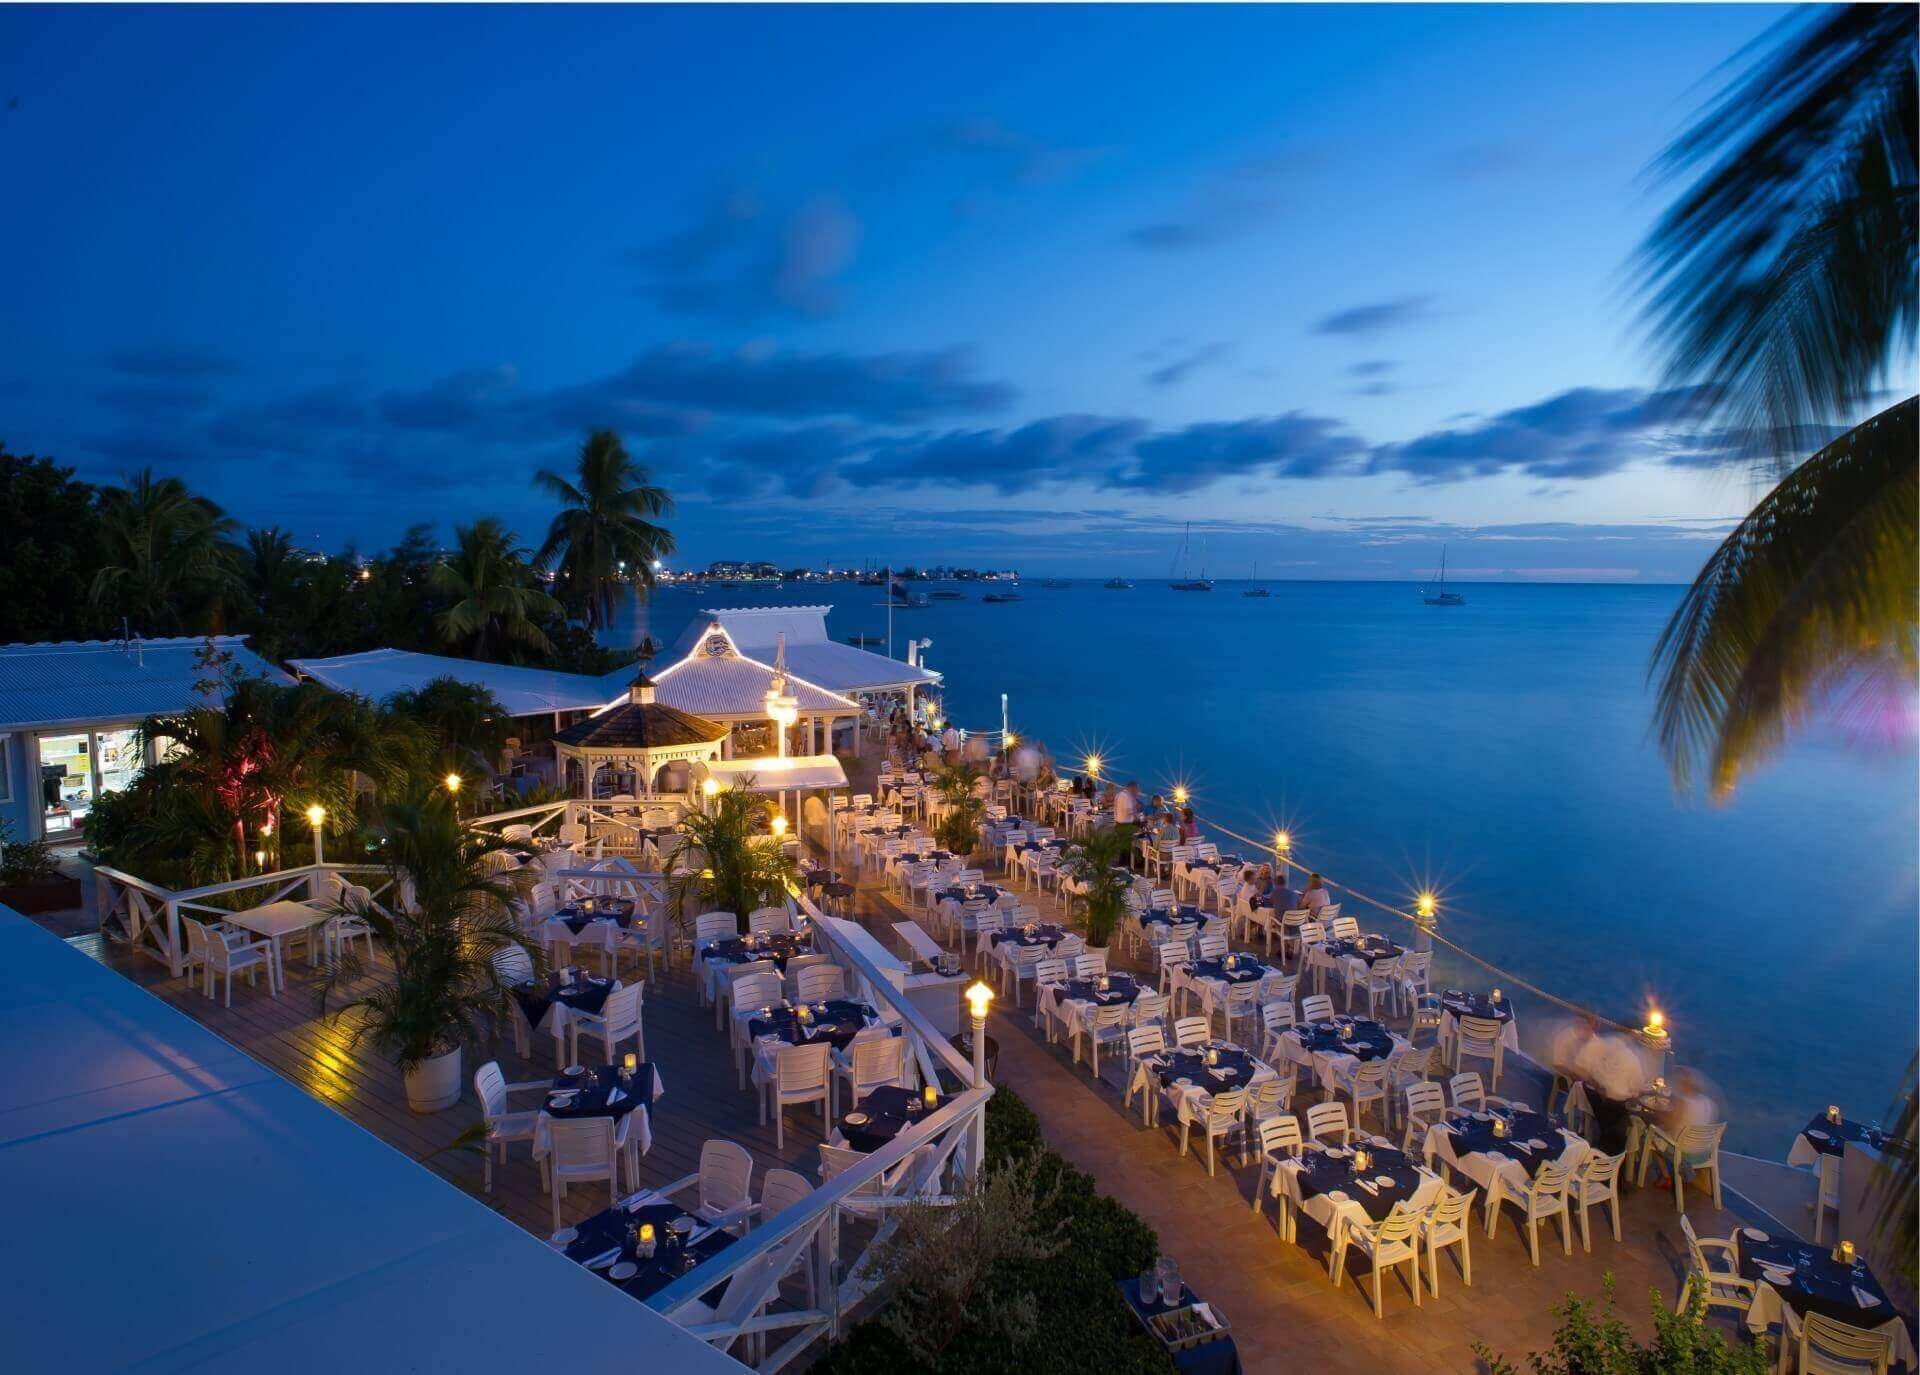 Premier Waterfront Dining Restaurant At Cayman Islands The